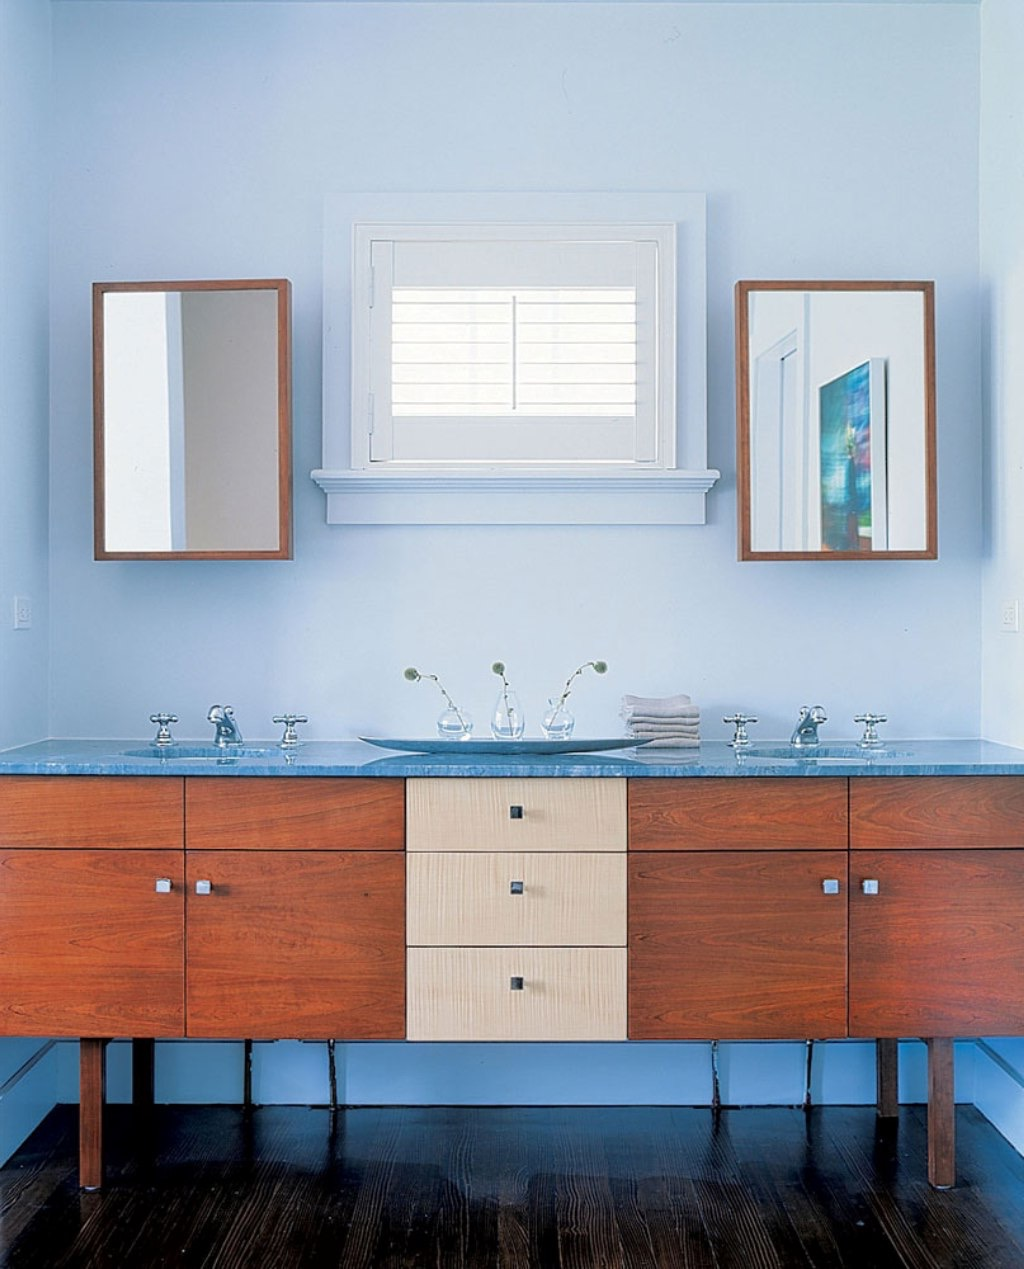 Minimalist Flat Panel Cabinets And Furniture For Modern Bathroom Interior (View 7 of 18)